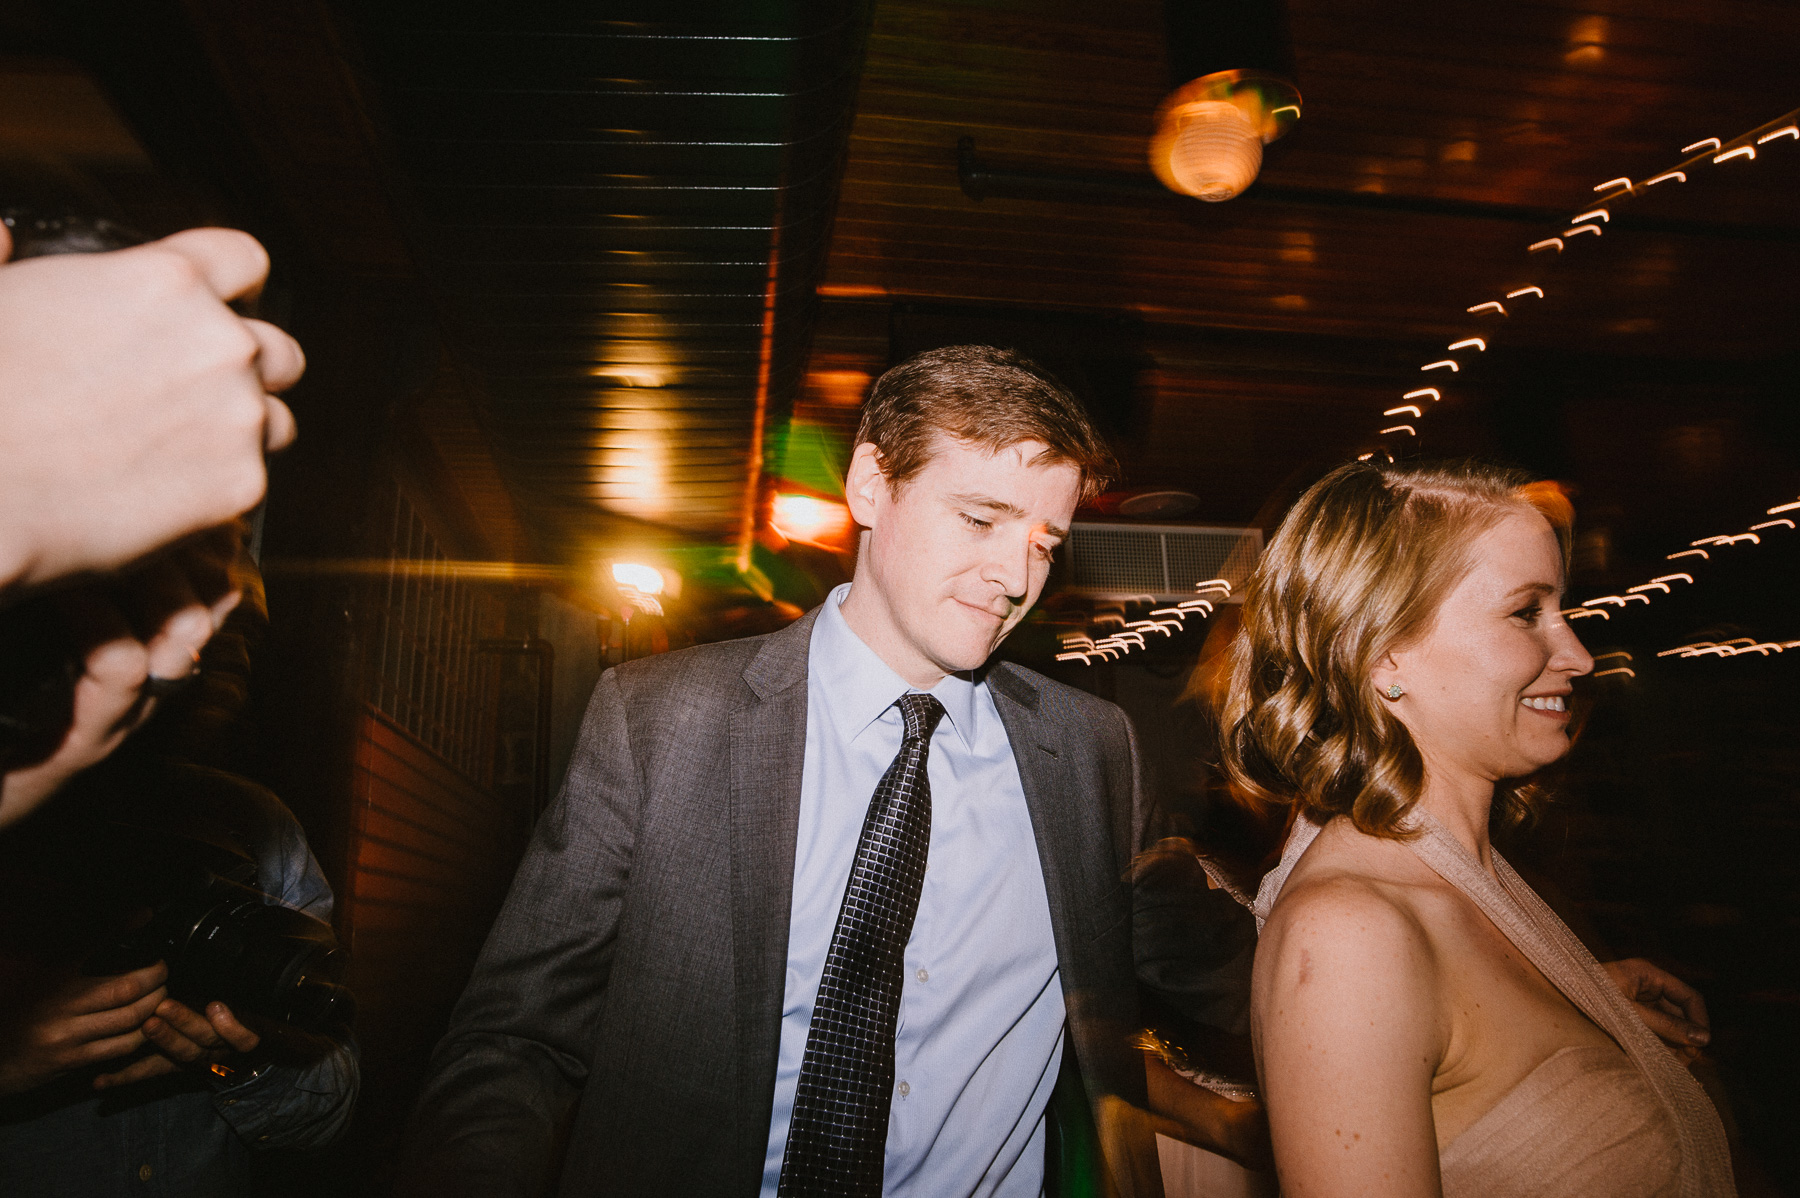 The_Carriage_House_at_Rockwood_Park_wedding_photo089.jpg